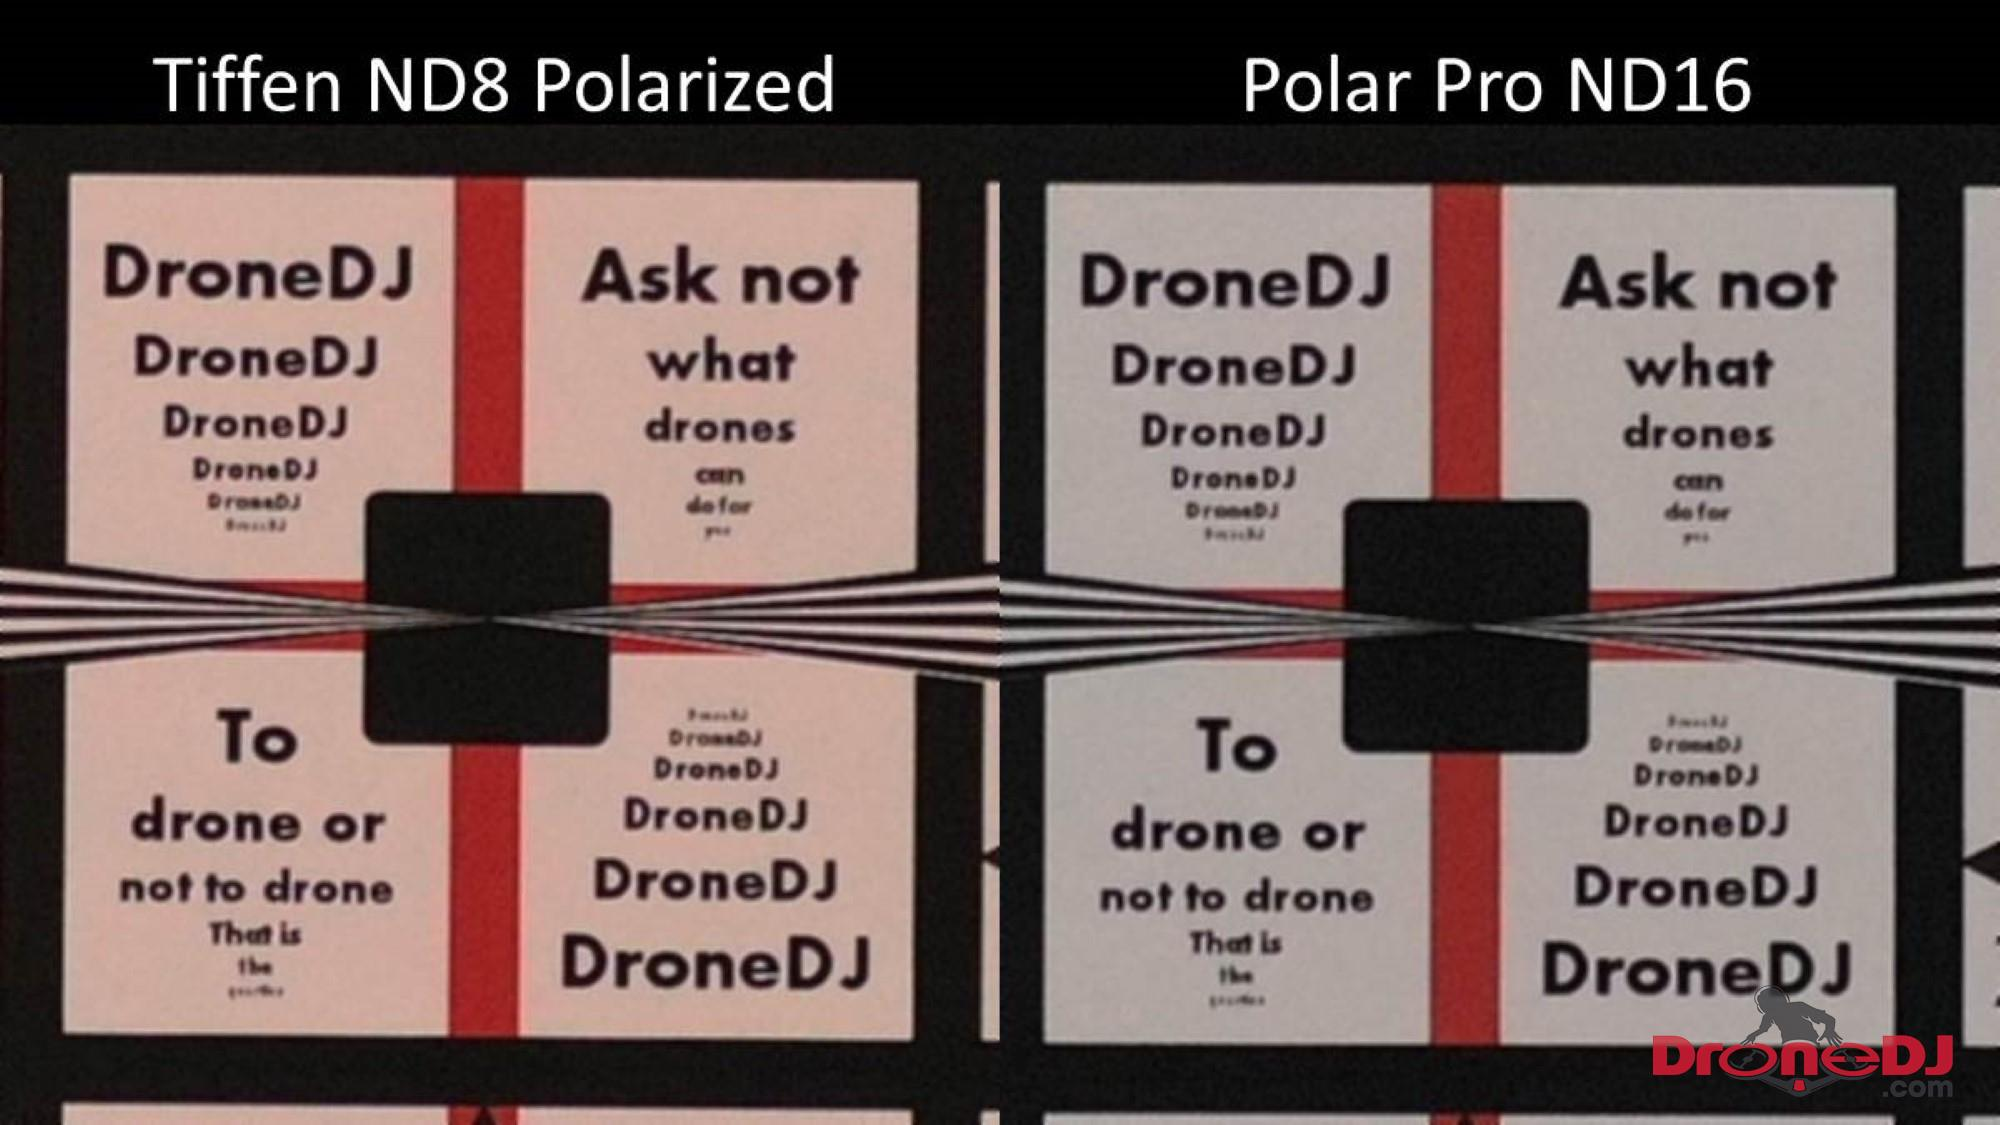 Polar Pro and Tiffen Compare